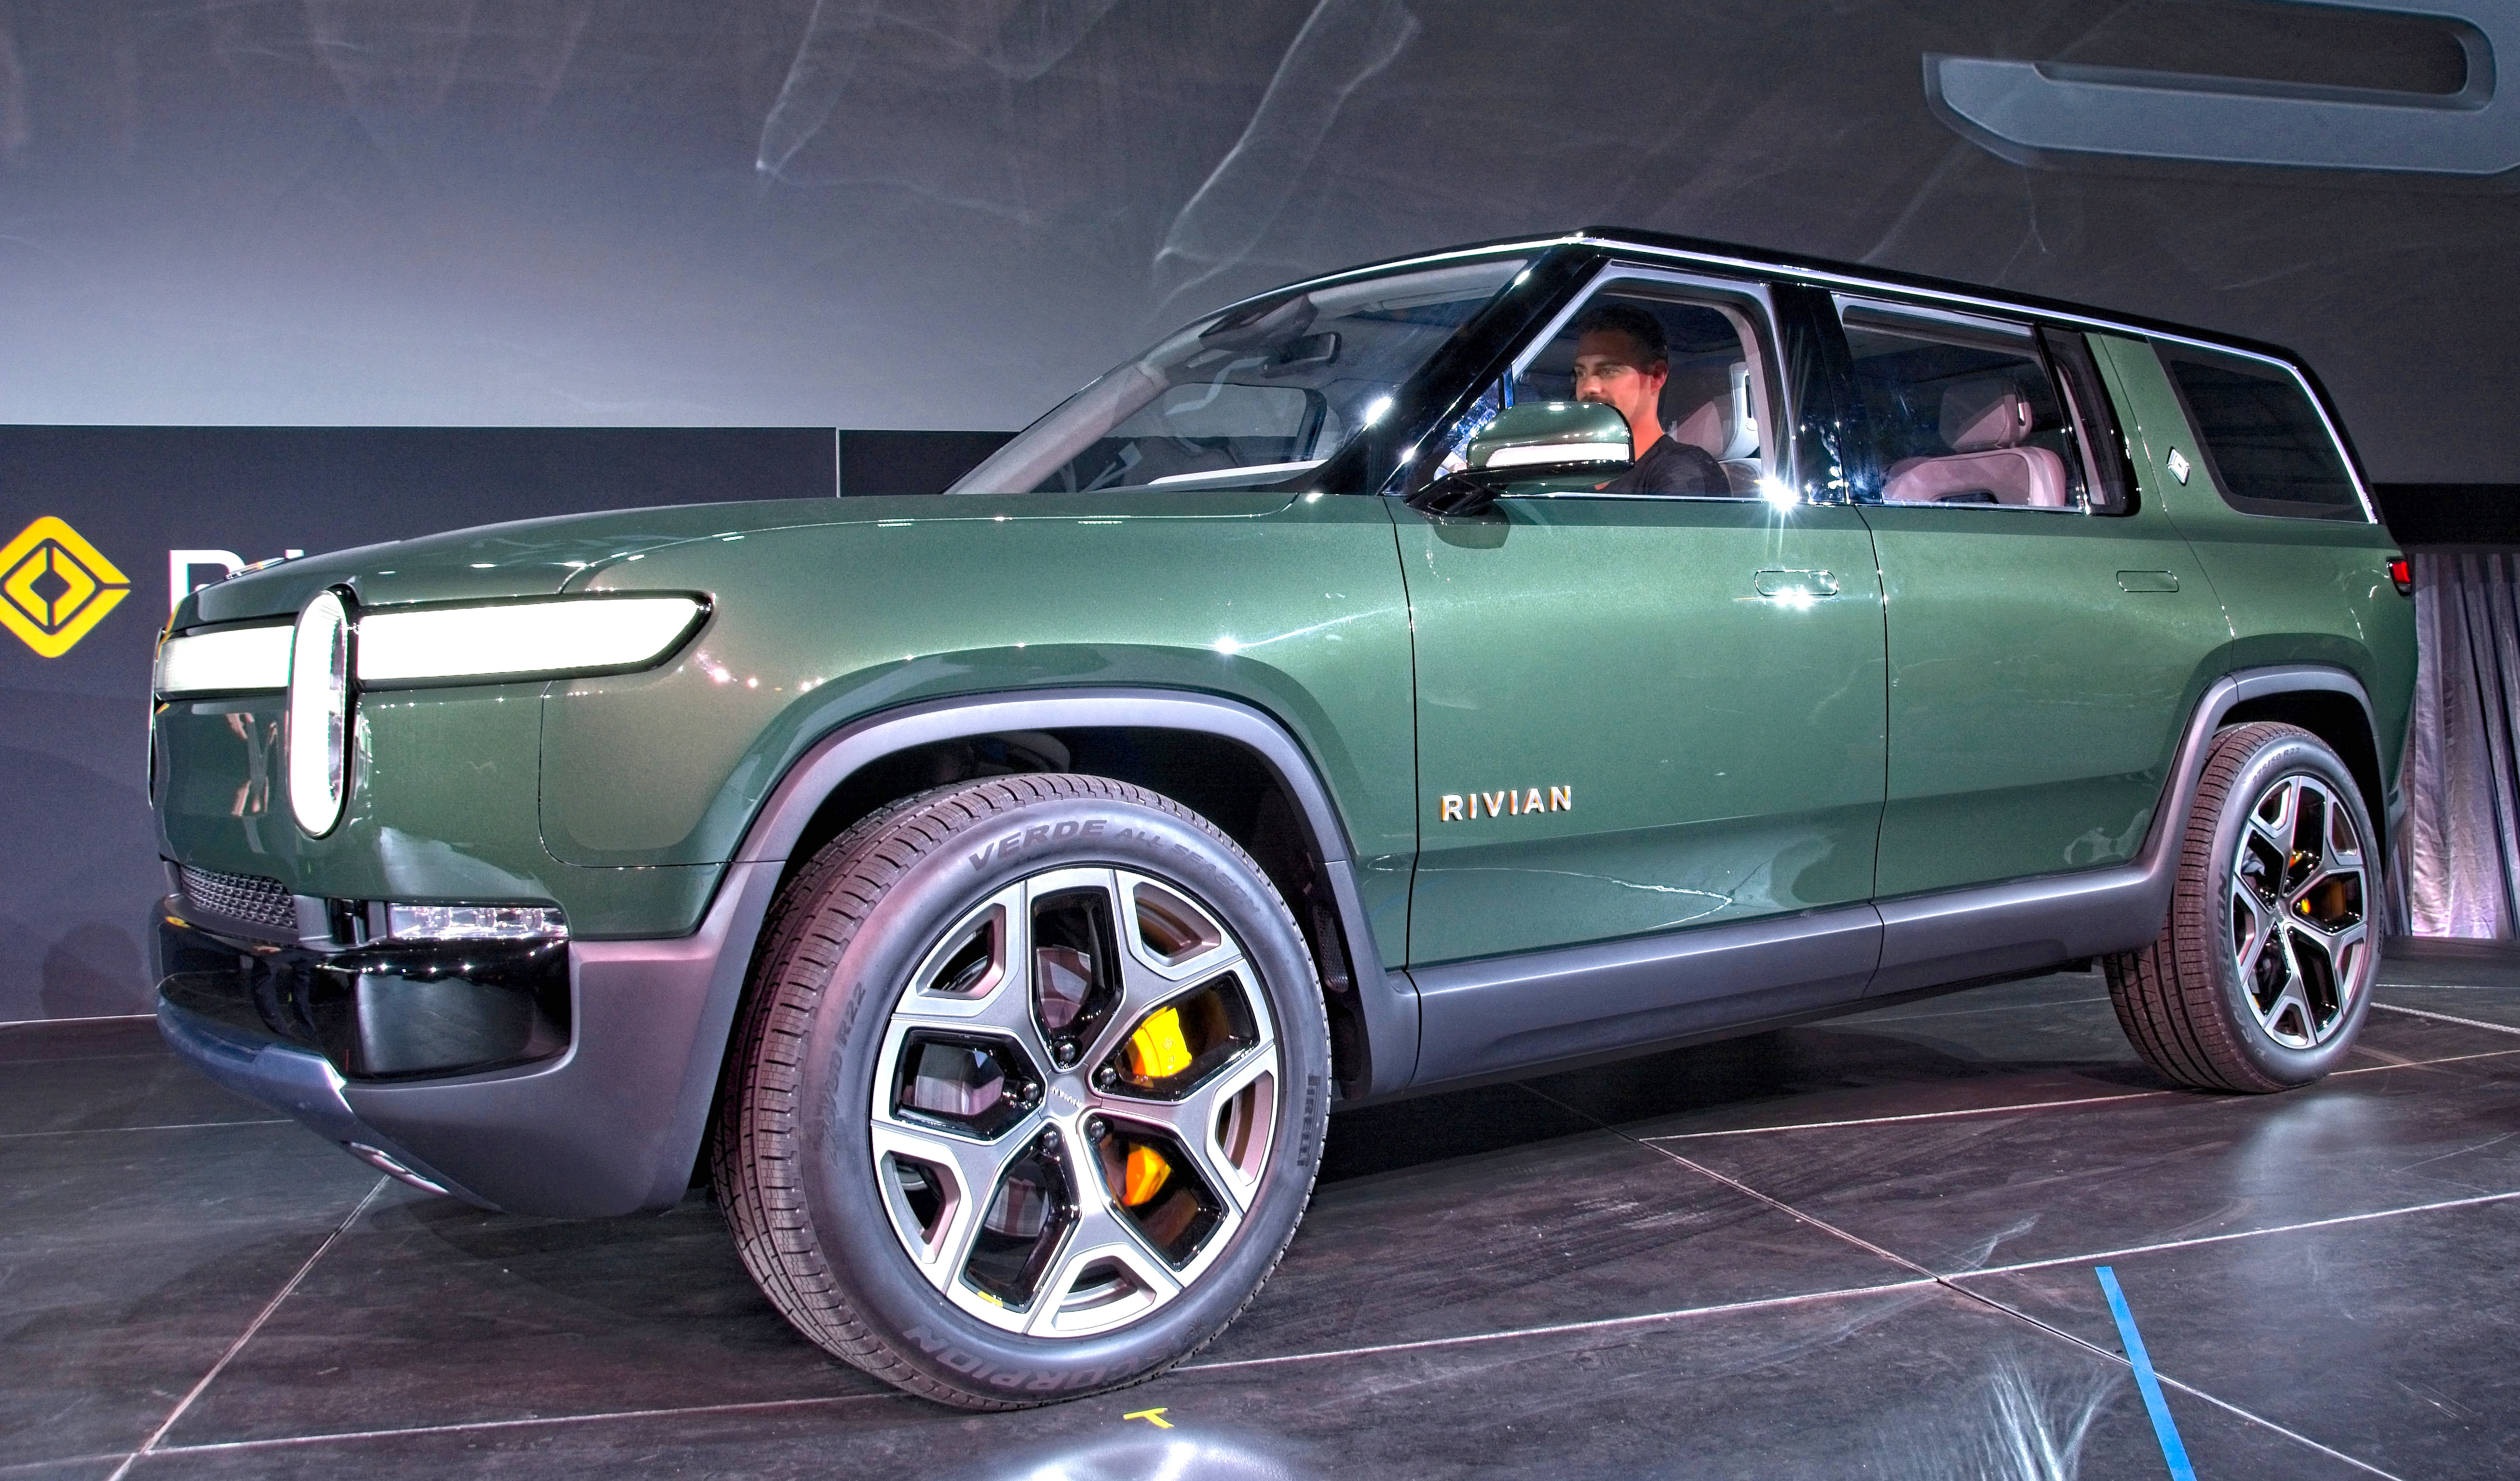 Debut_of_the_Rivian_R1S_SUV_at_the_2018_